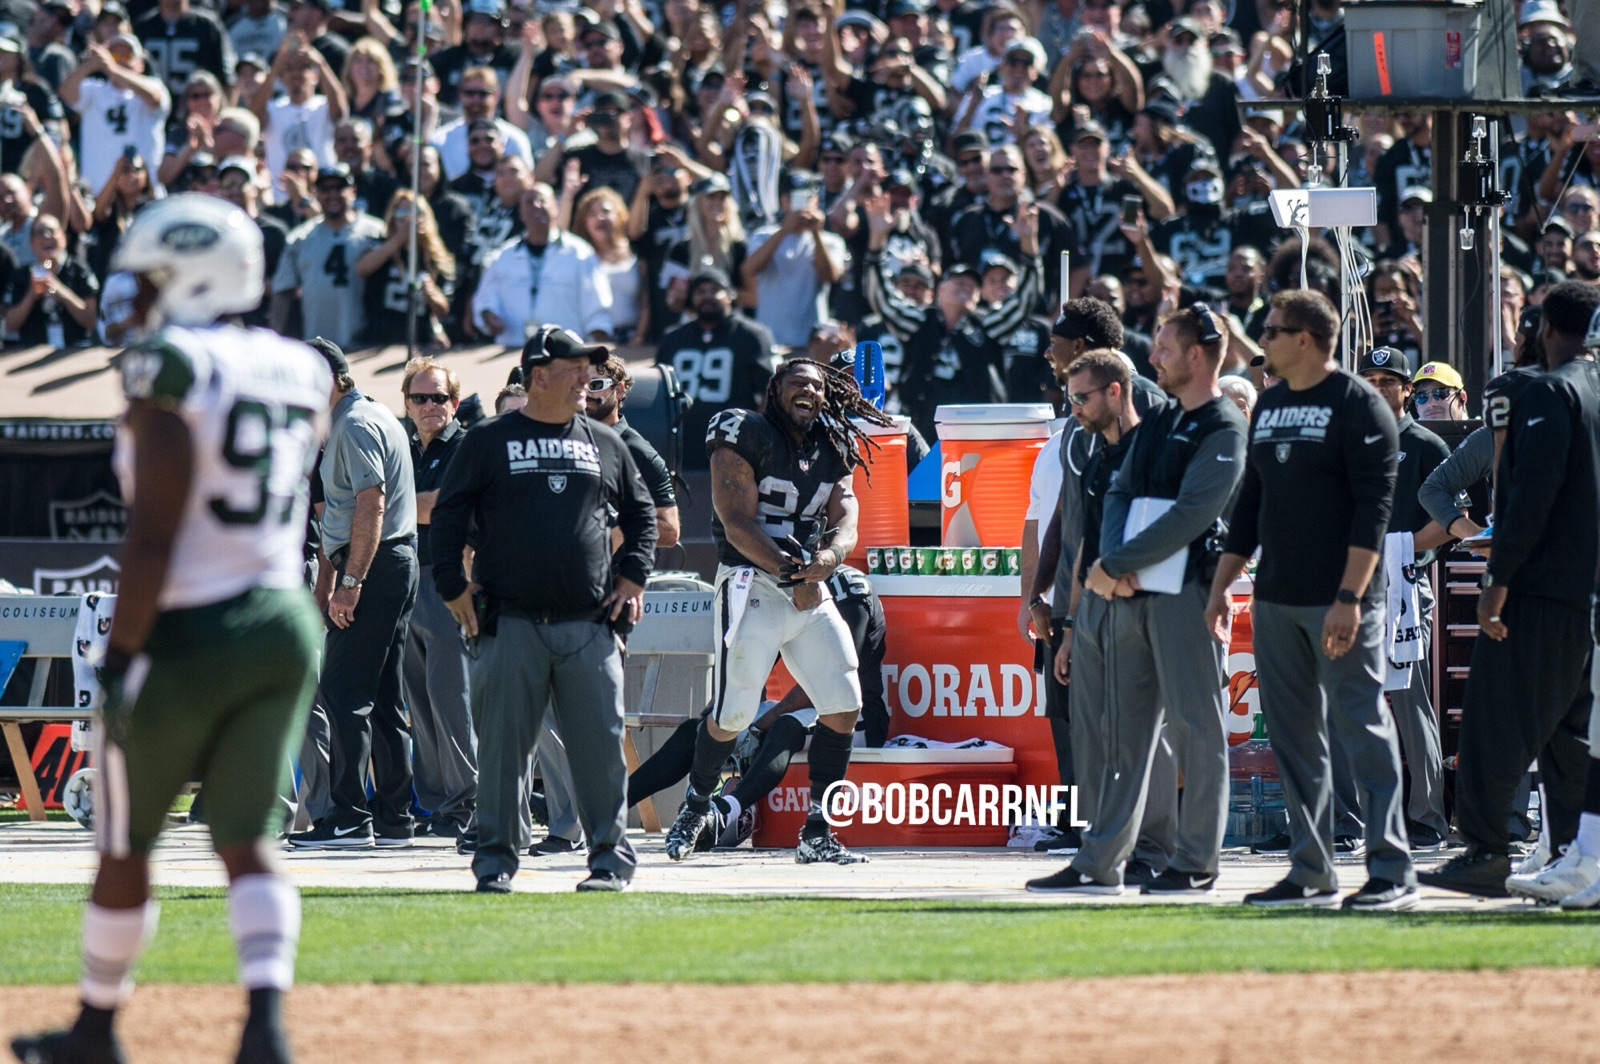 WATCH: Marshawn Lynch puts it down for The Town in Raiders win